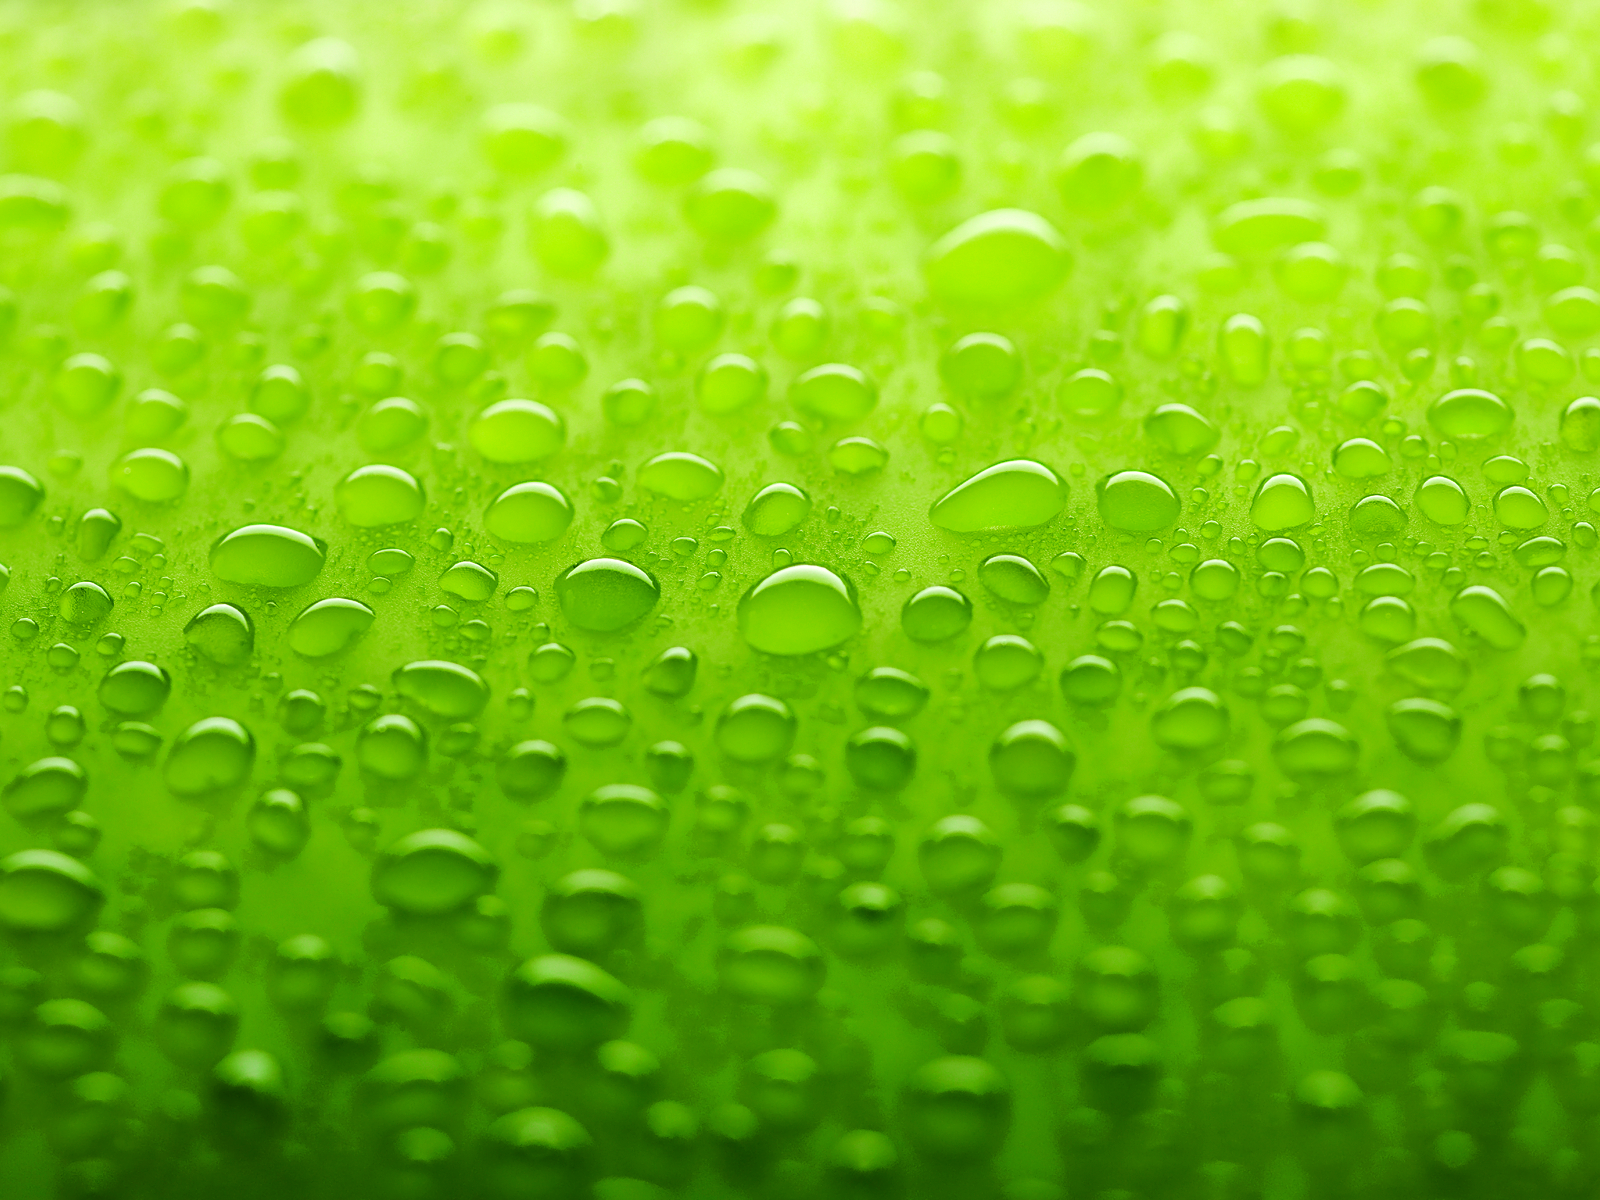 Green Wallpaper Wallpaper  - Green Wallpaper Colors